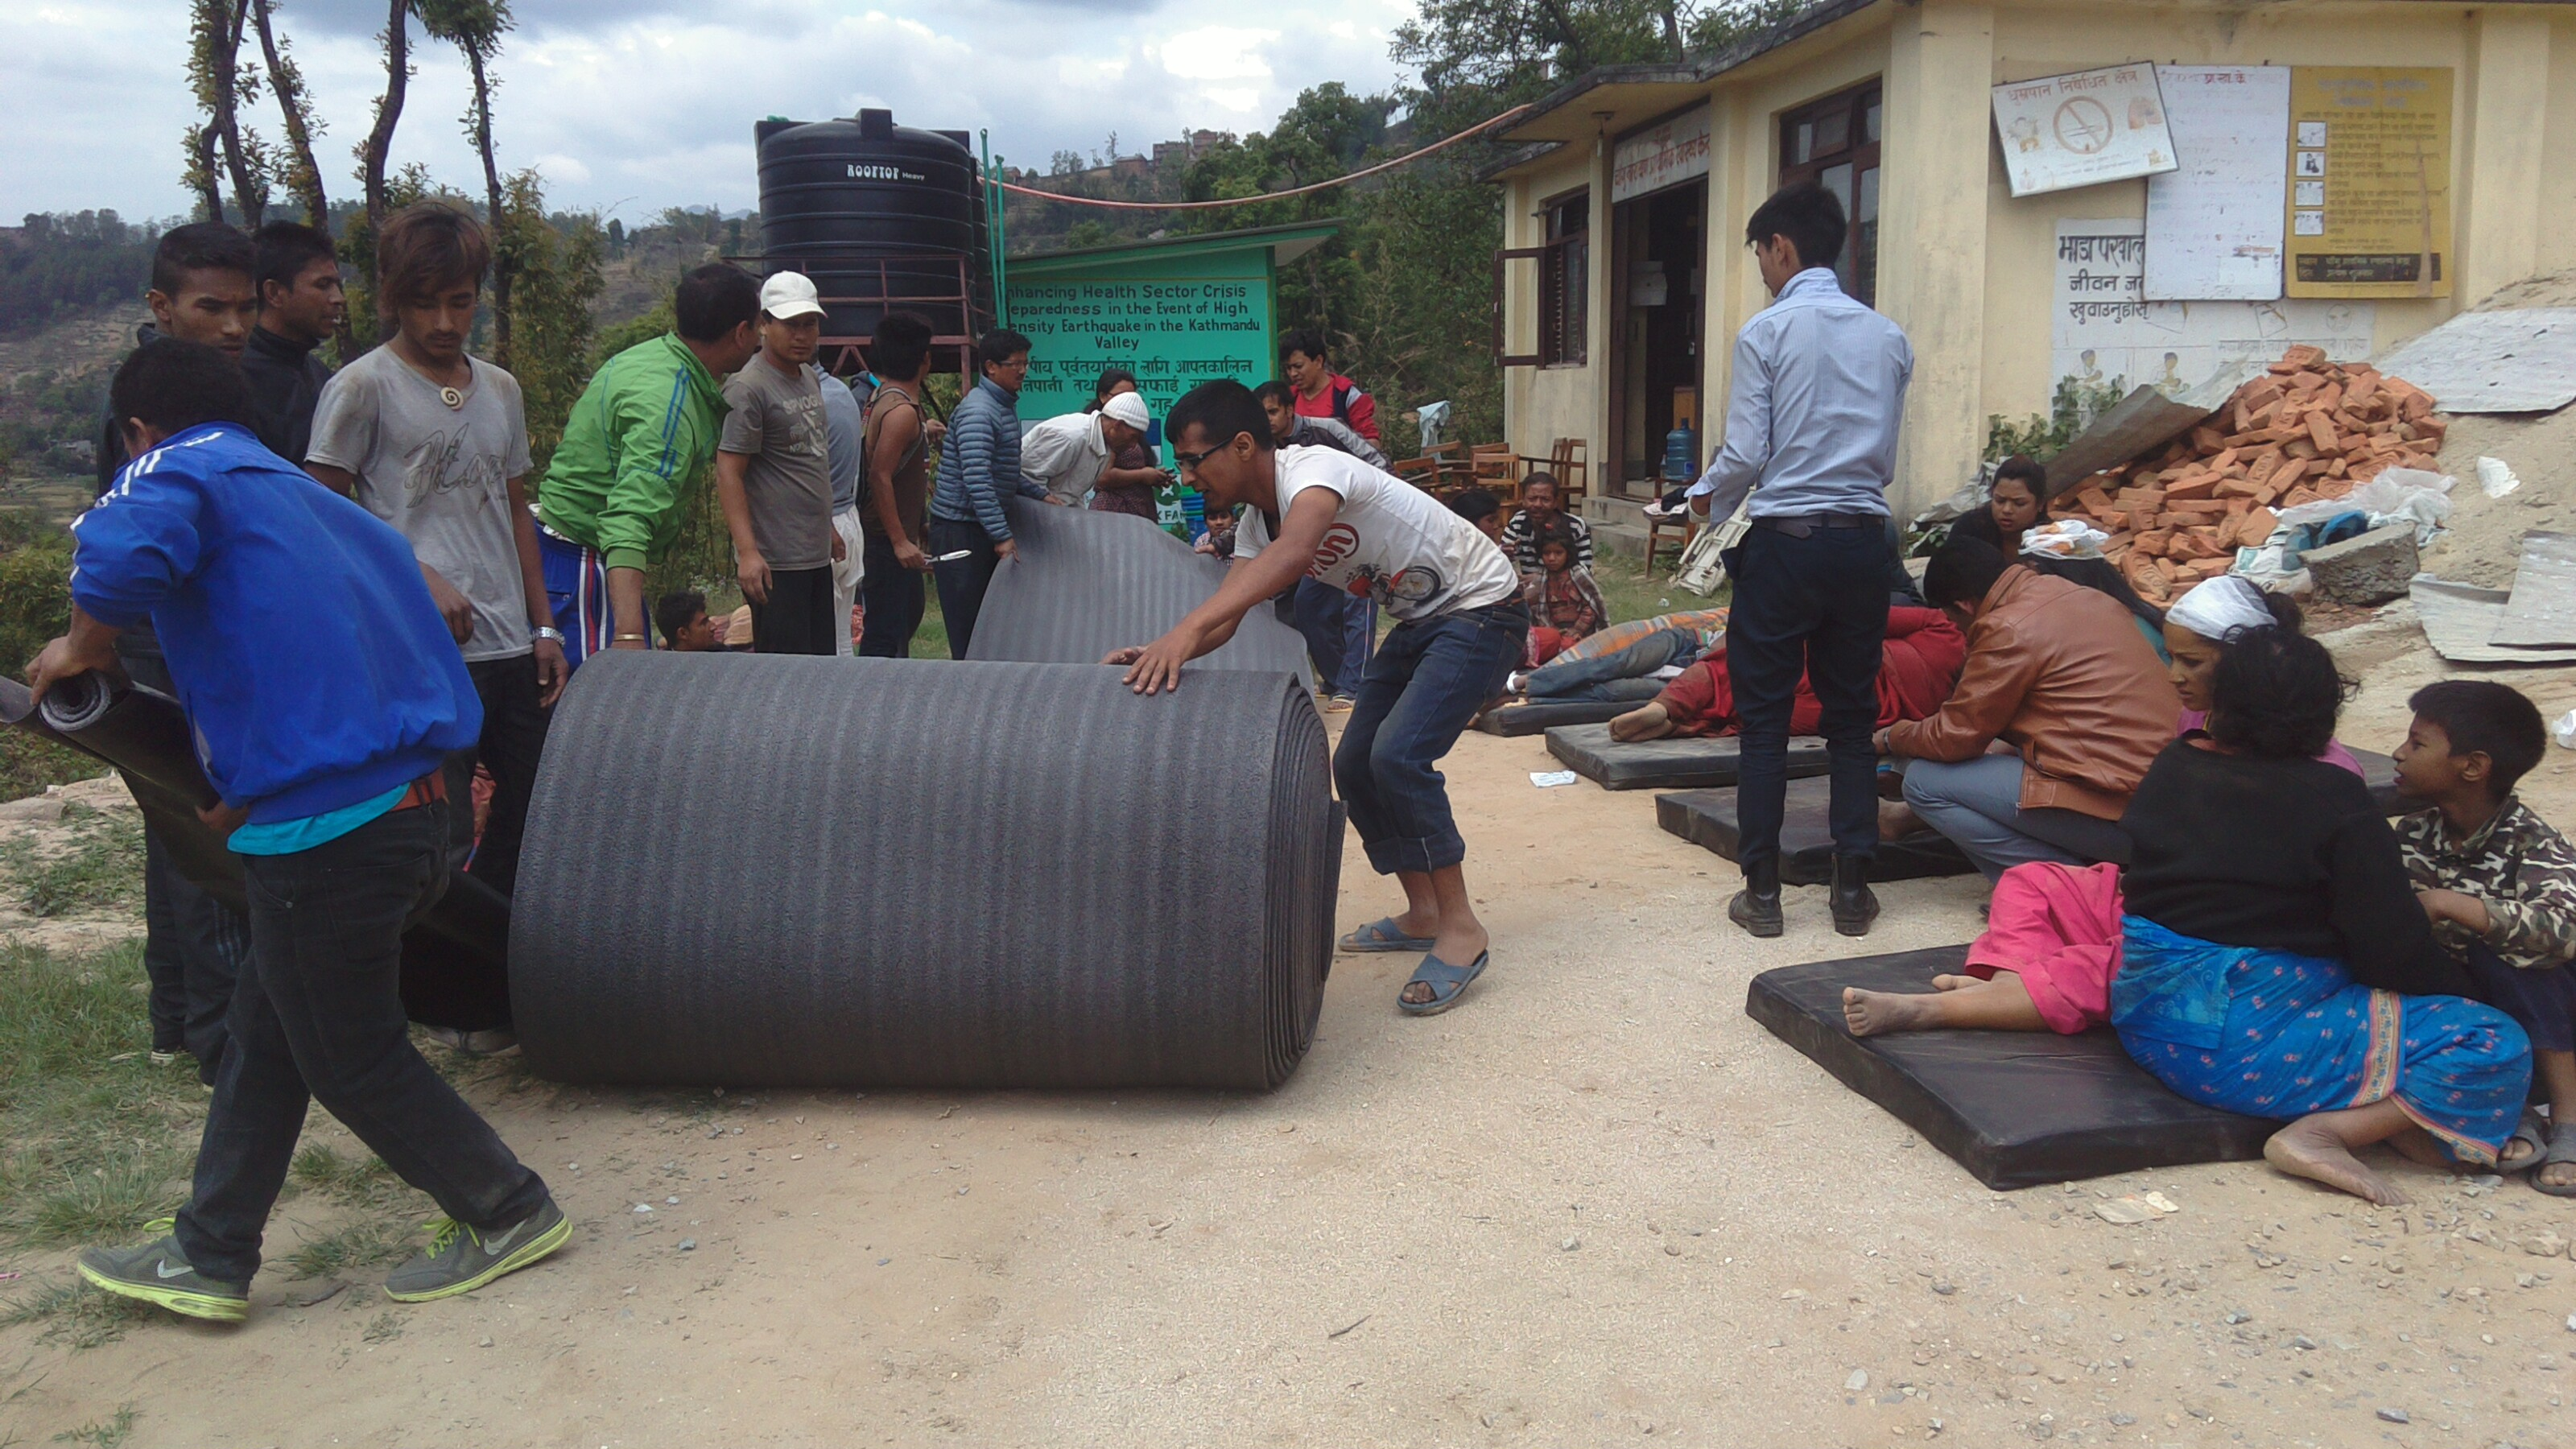 Staff trained in disaster preparedness roll out thermal mats to provide space for the treatment of many injured just an hour after the devastating earthquake - Credit: DRR Team/Oxfam